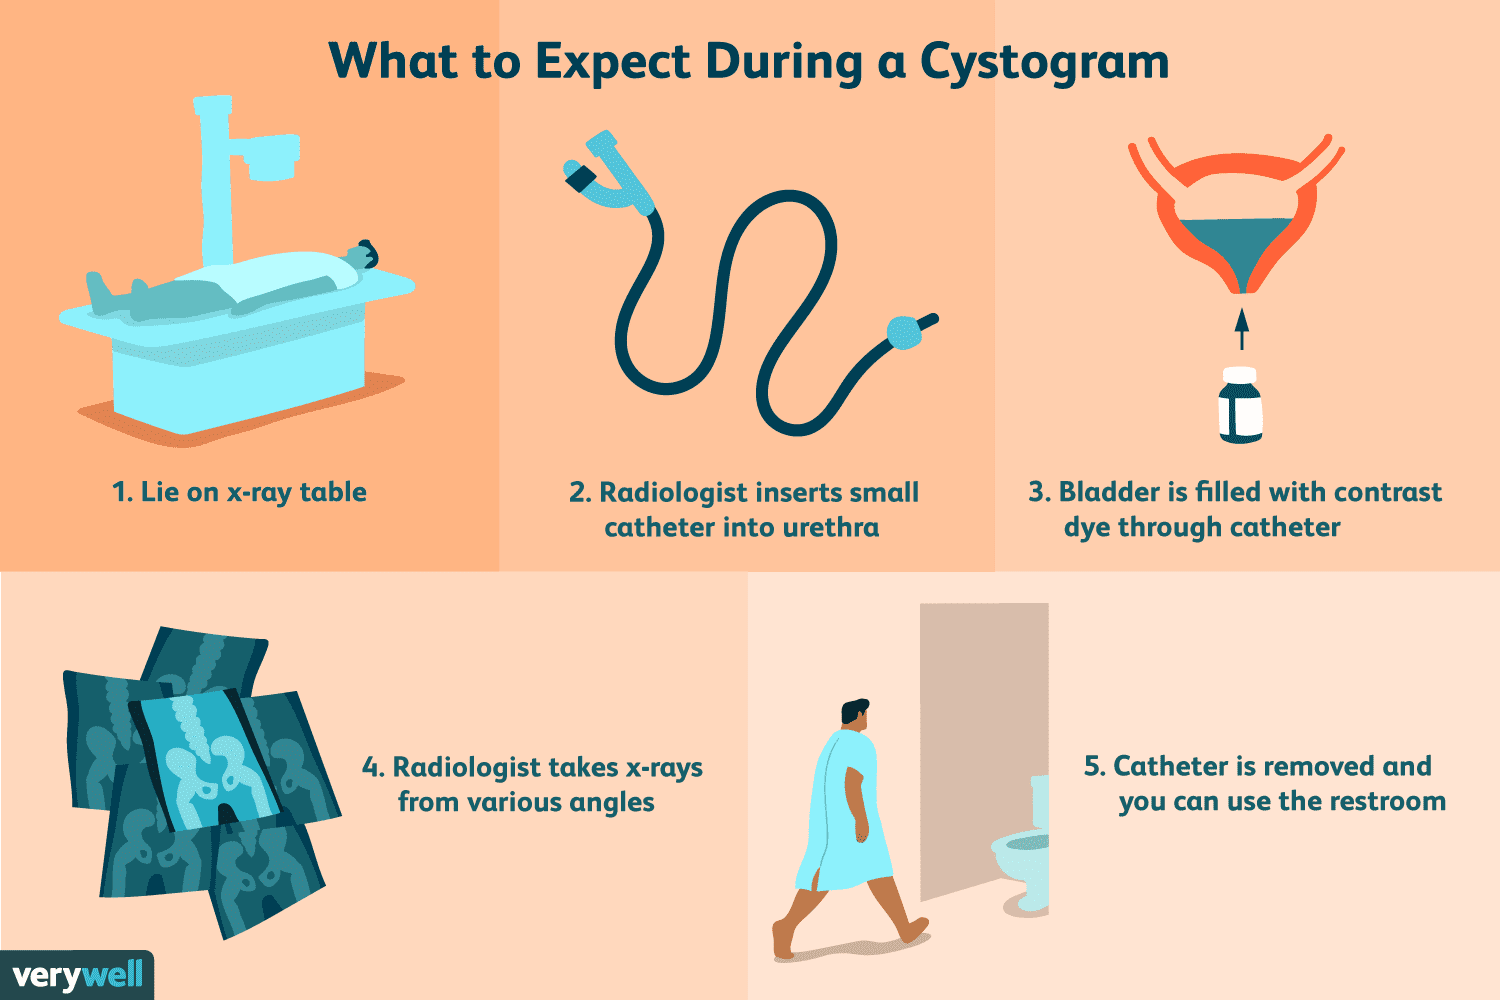 What to Expect During a Cystogram